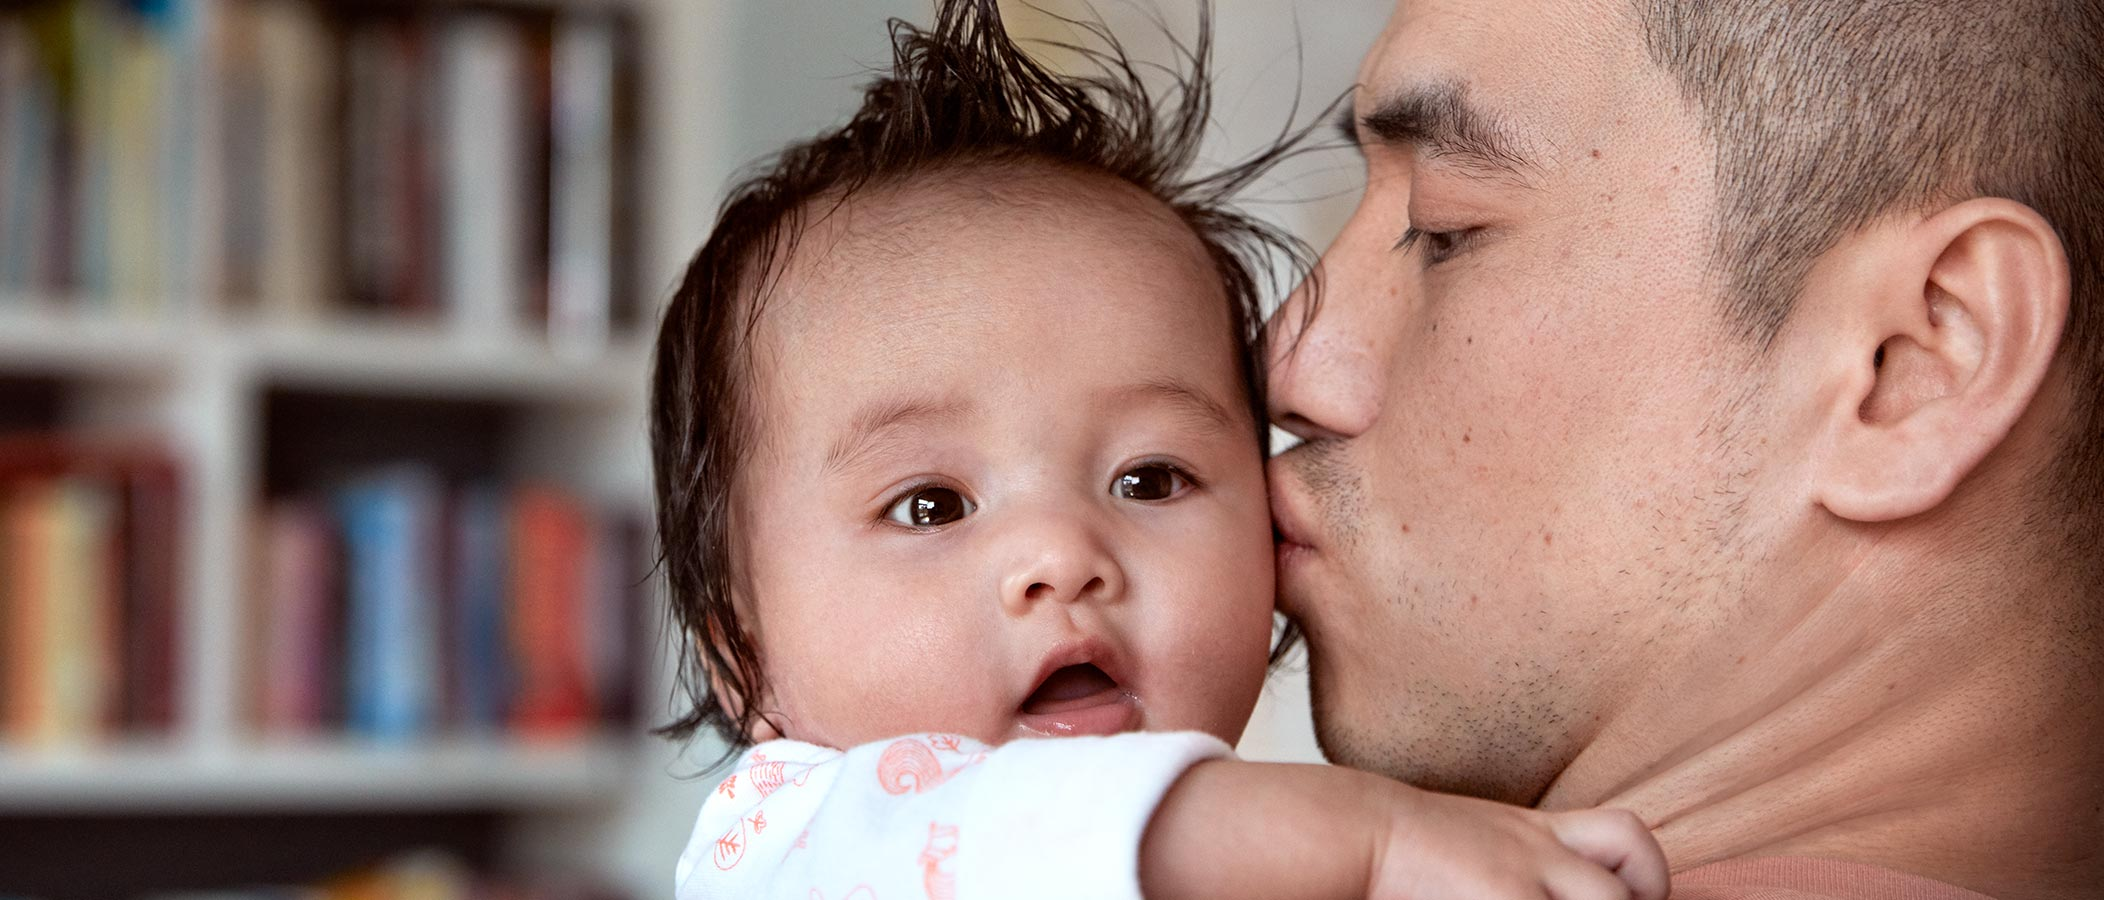 Dad kissing baby after bath time